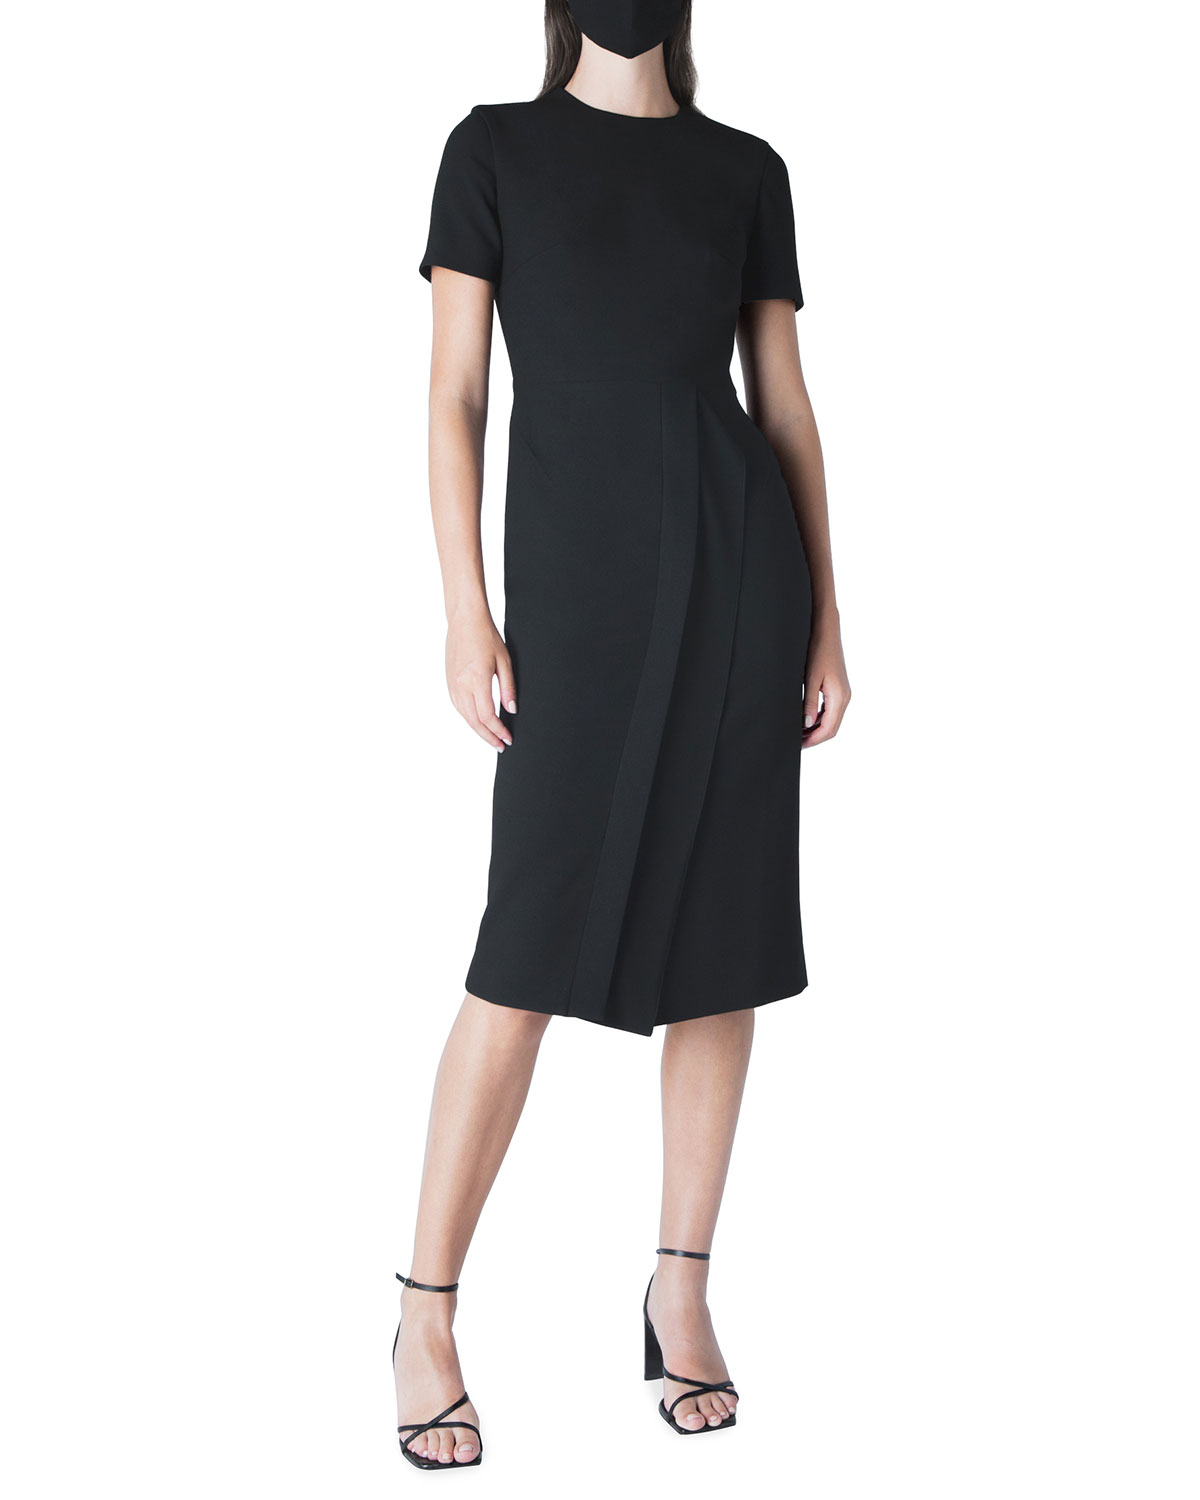 Primley Double Pleated Sheath Midi Dress w/ Face Mask